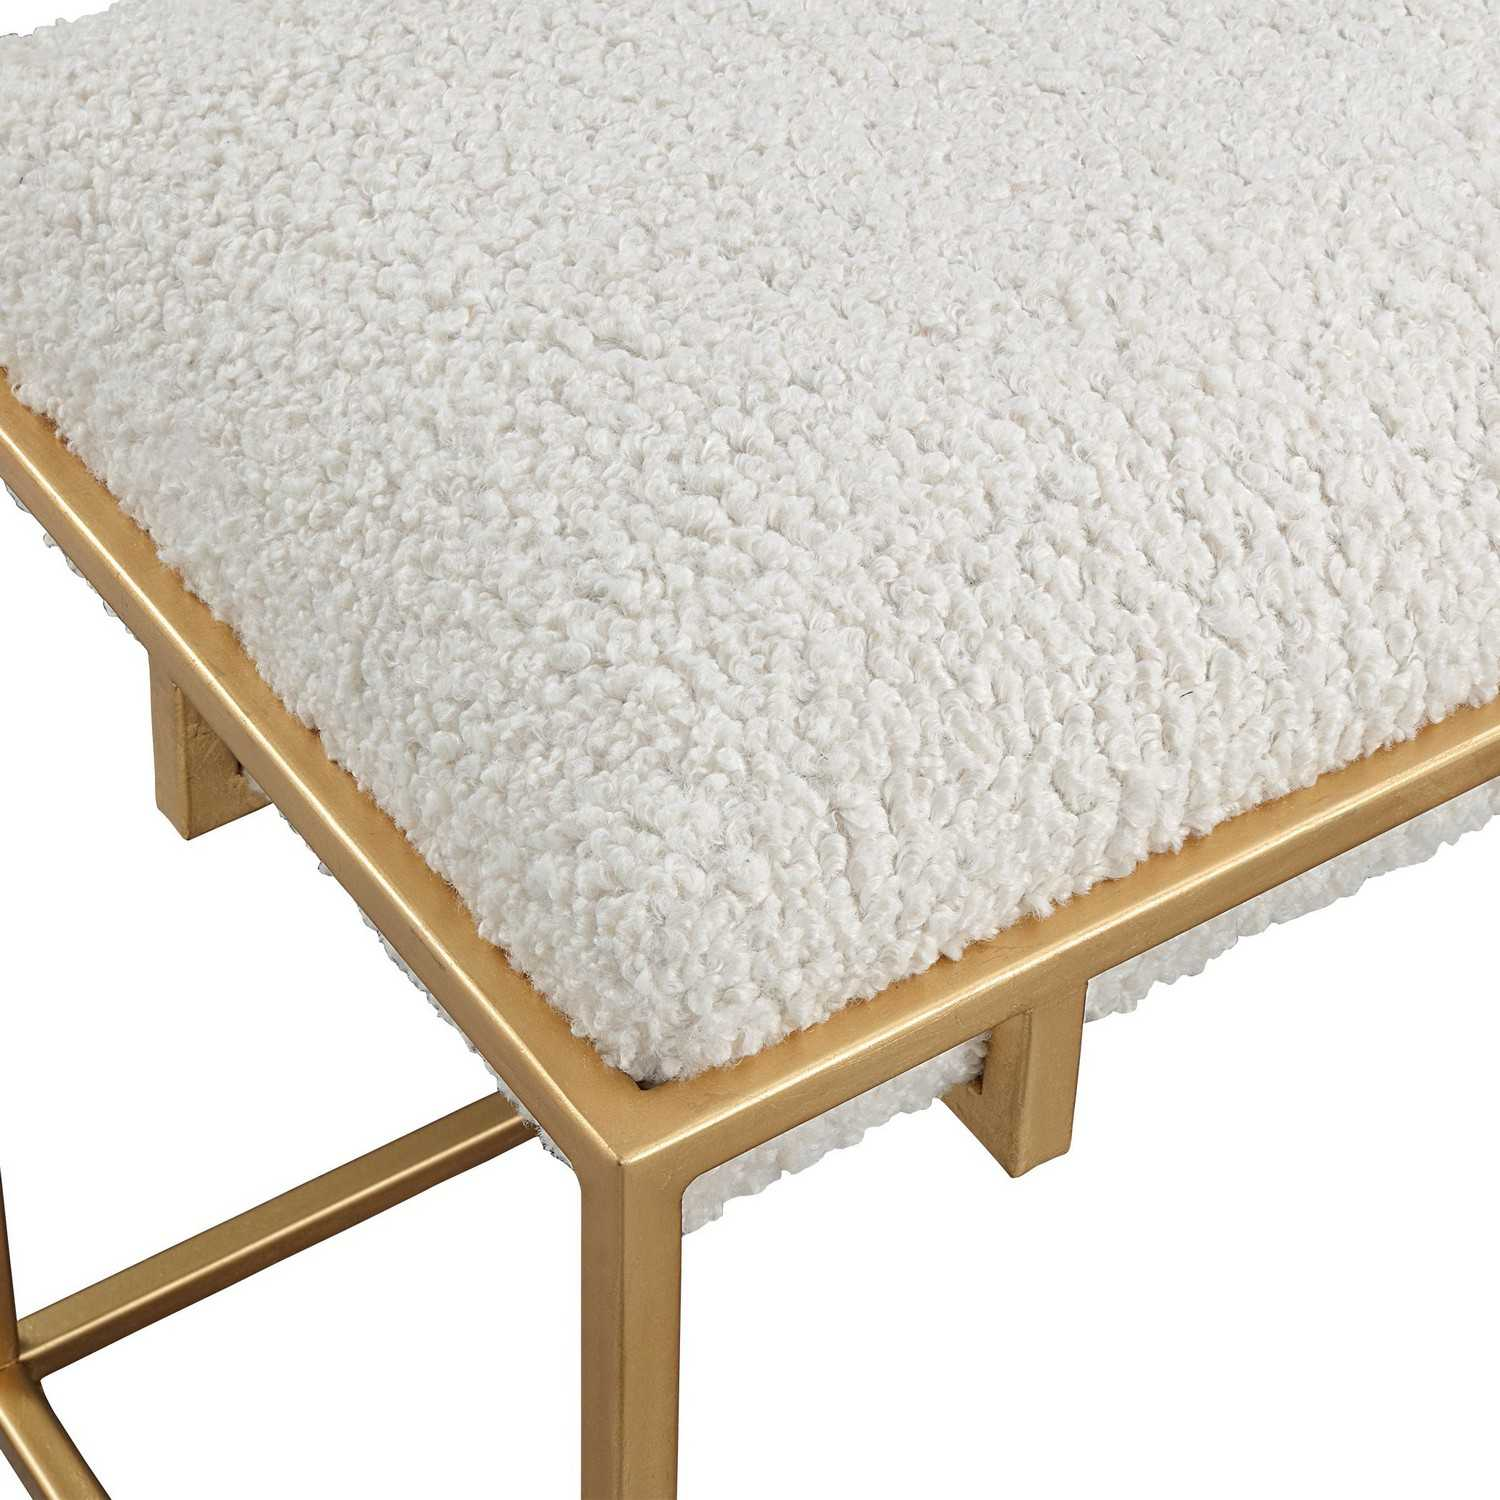 Uttermost Paradox Small Shearling Bench - Gold/White